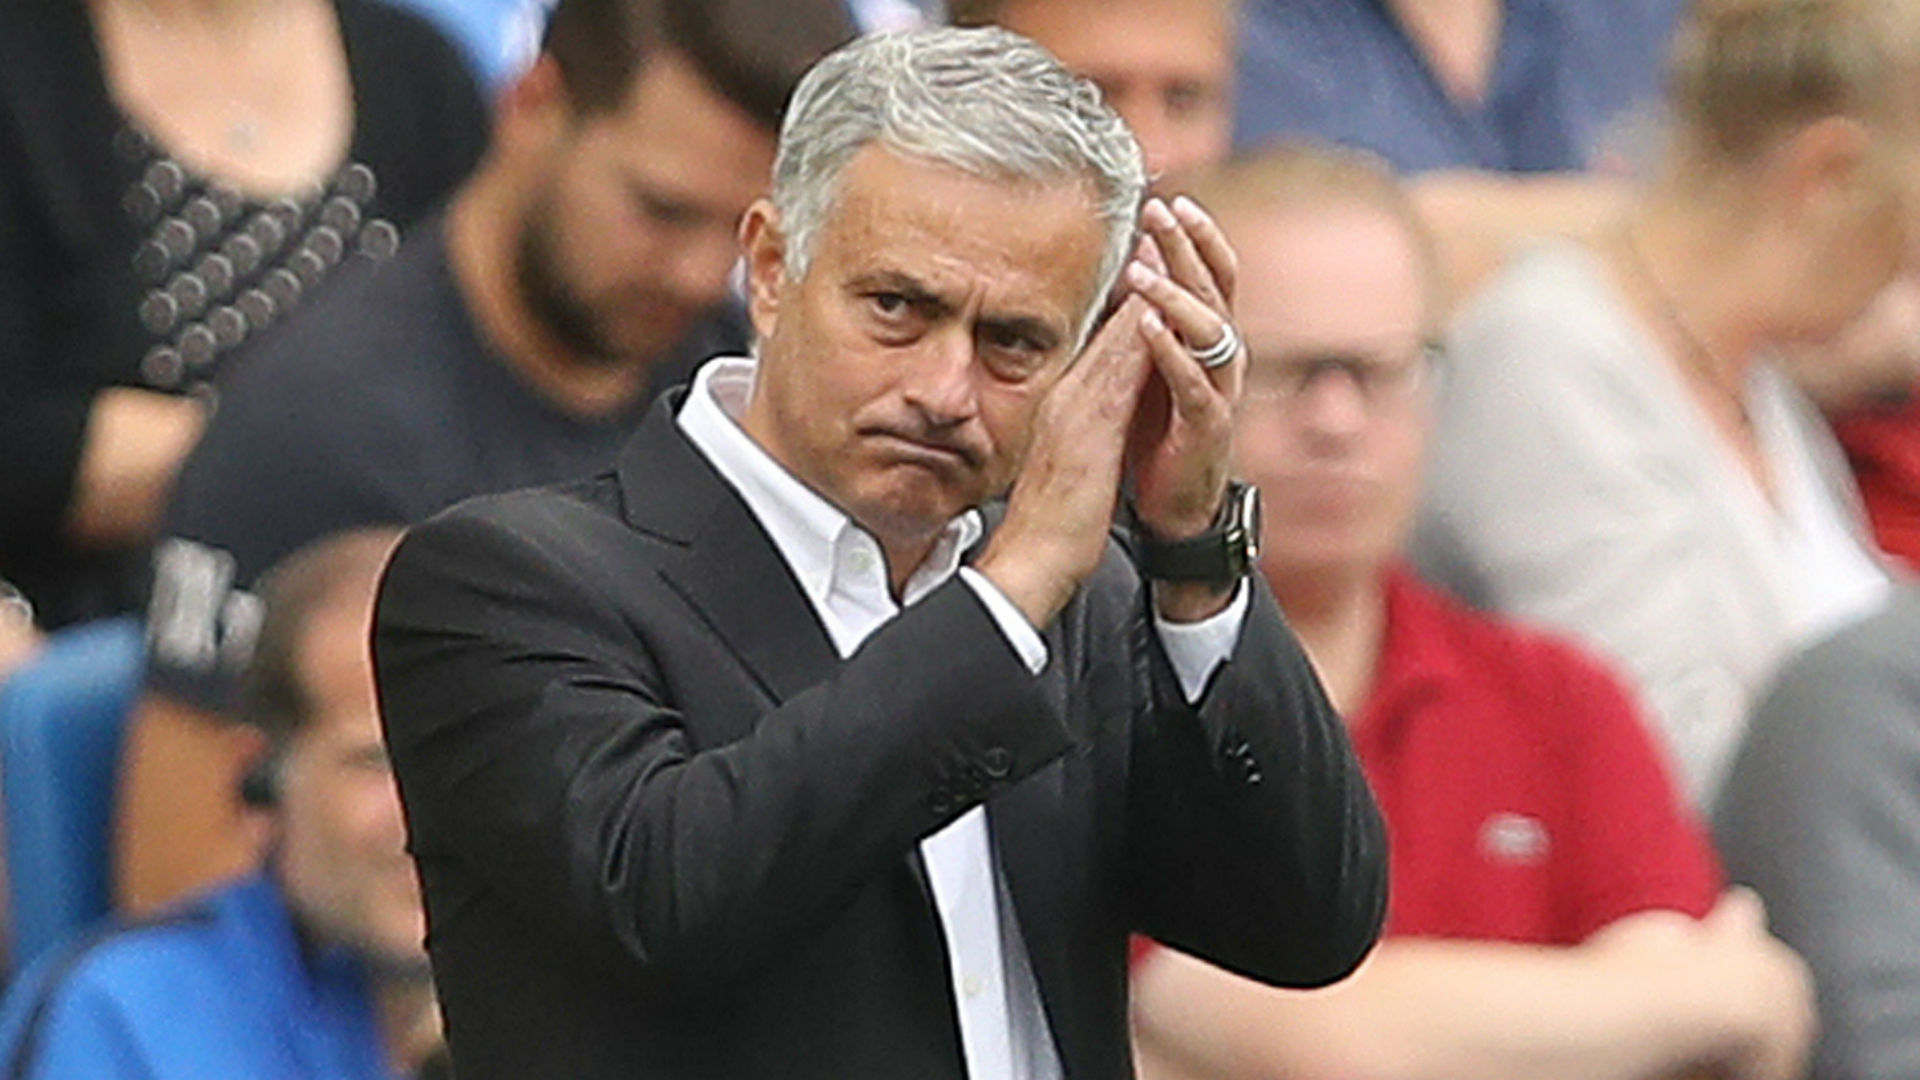 Jose Mourinho storms out of press conference demanding respect